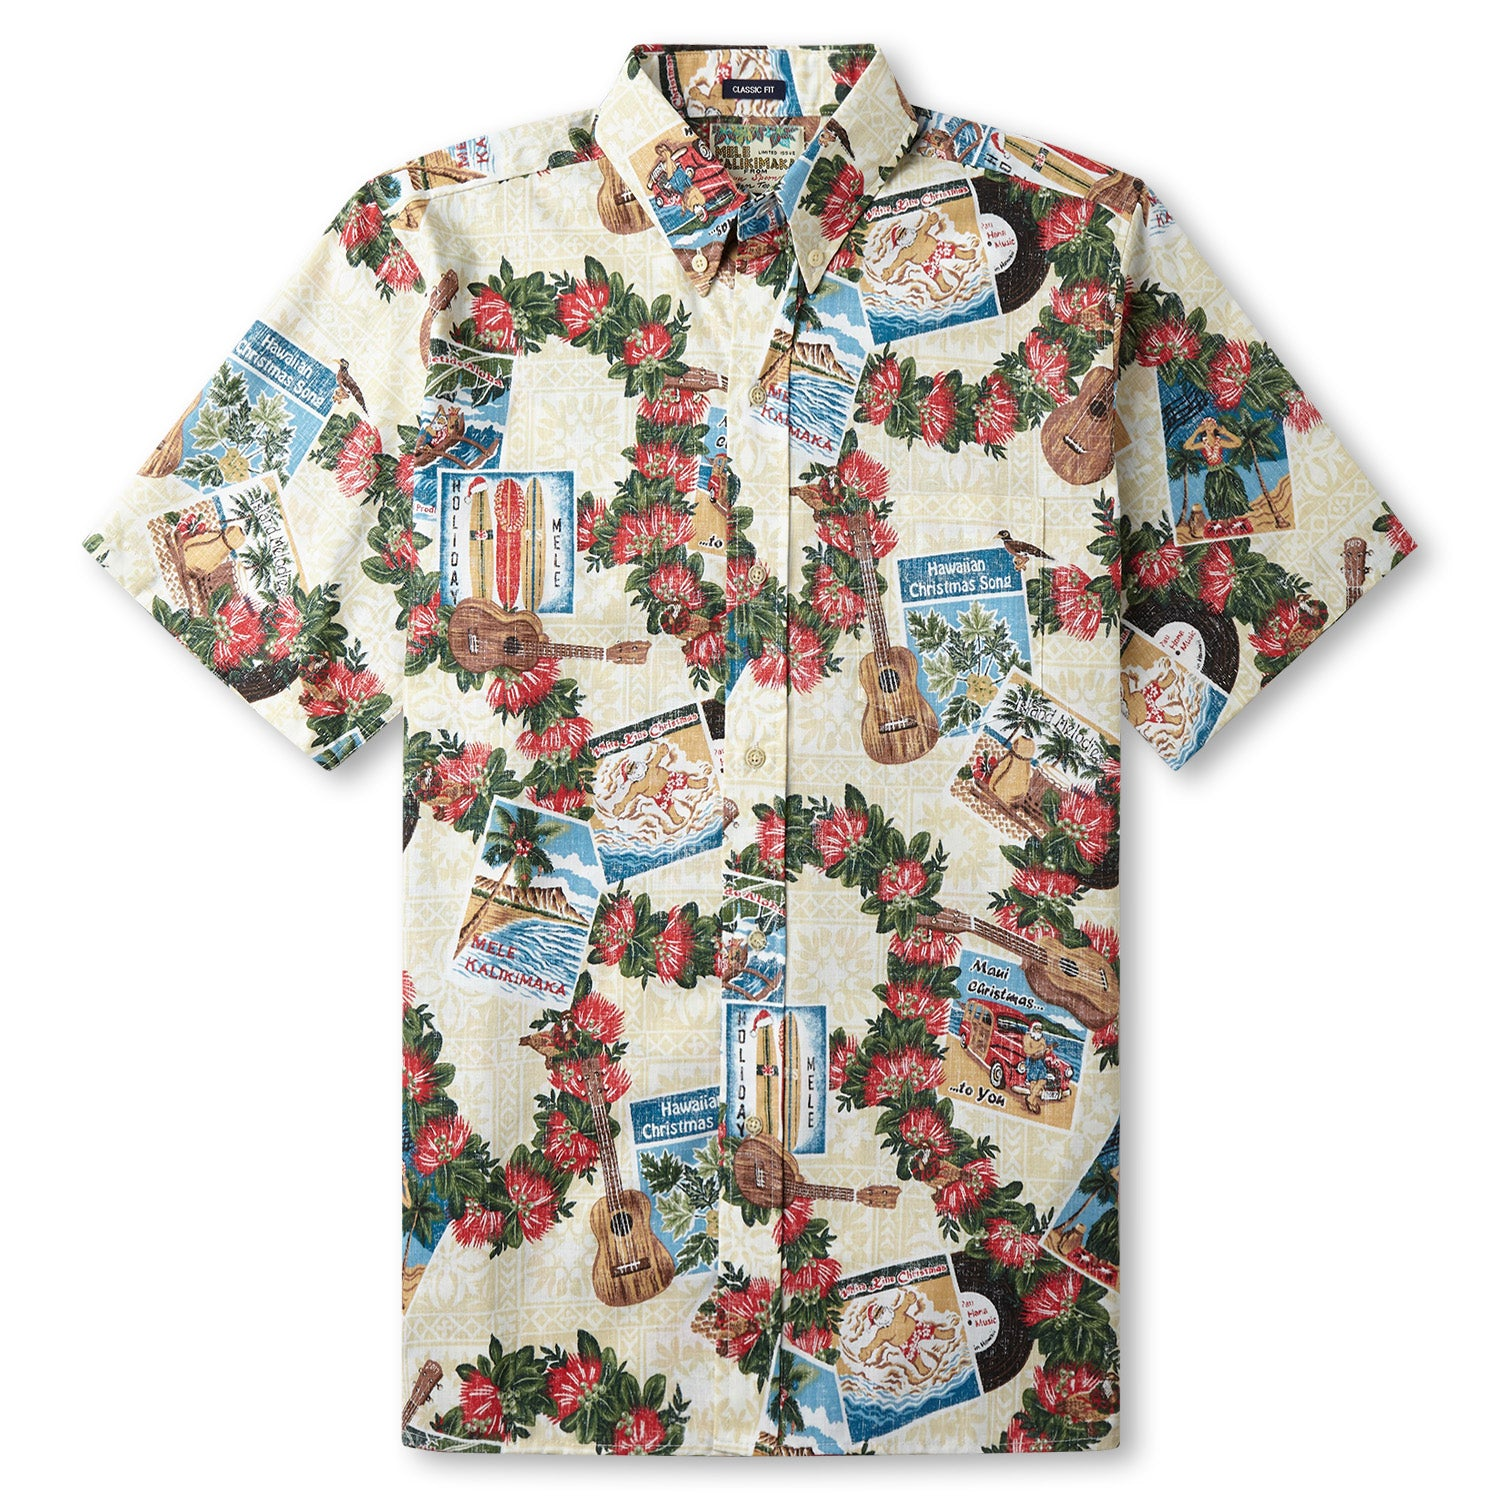 HAWAIIAN CHRISTMAS 2017 / CLASSIC FIT - Zoomed